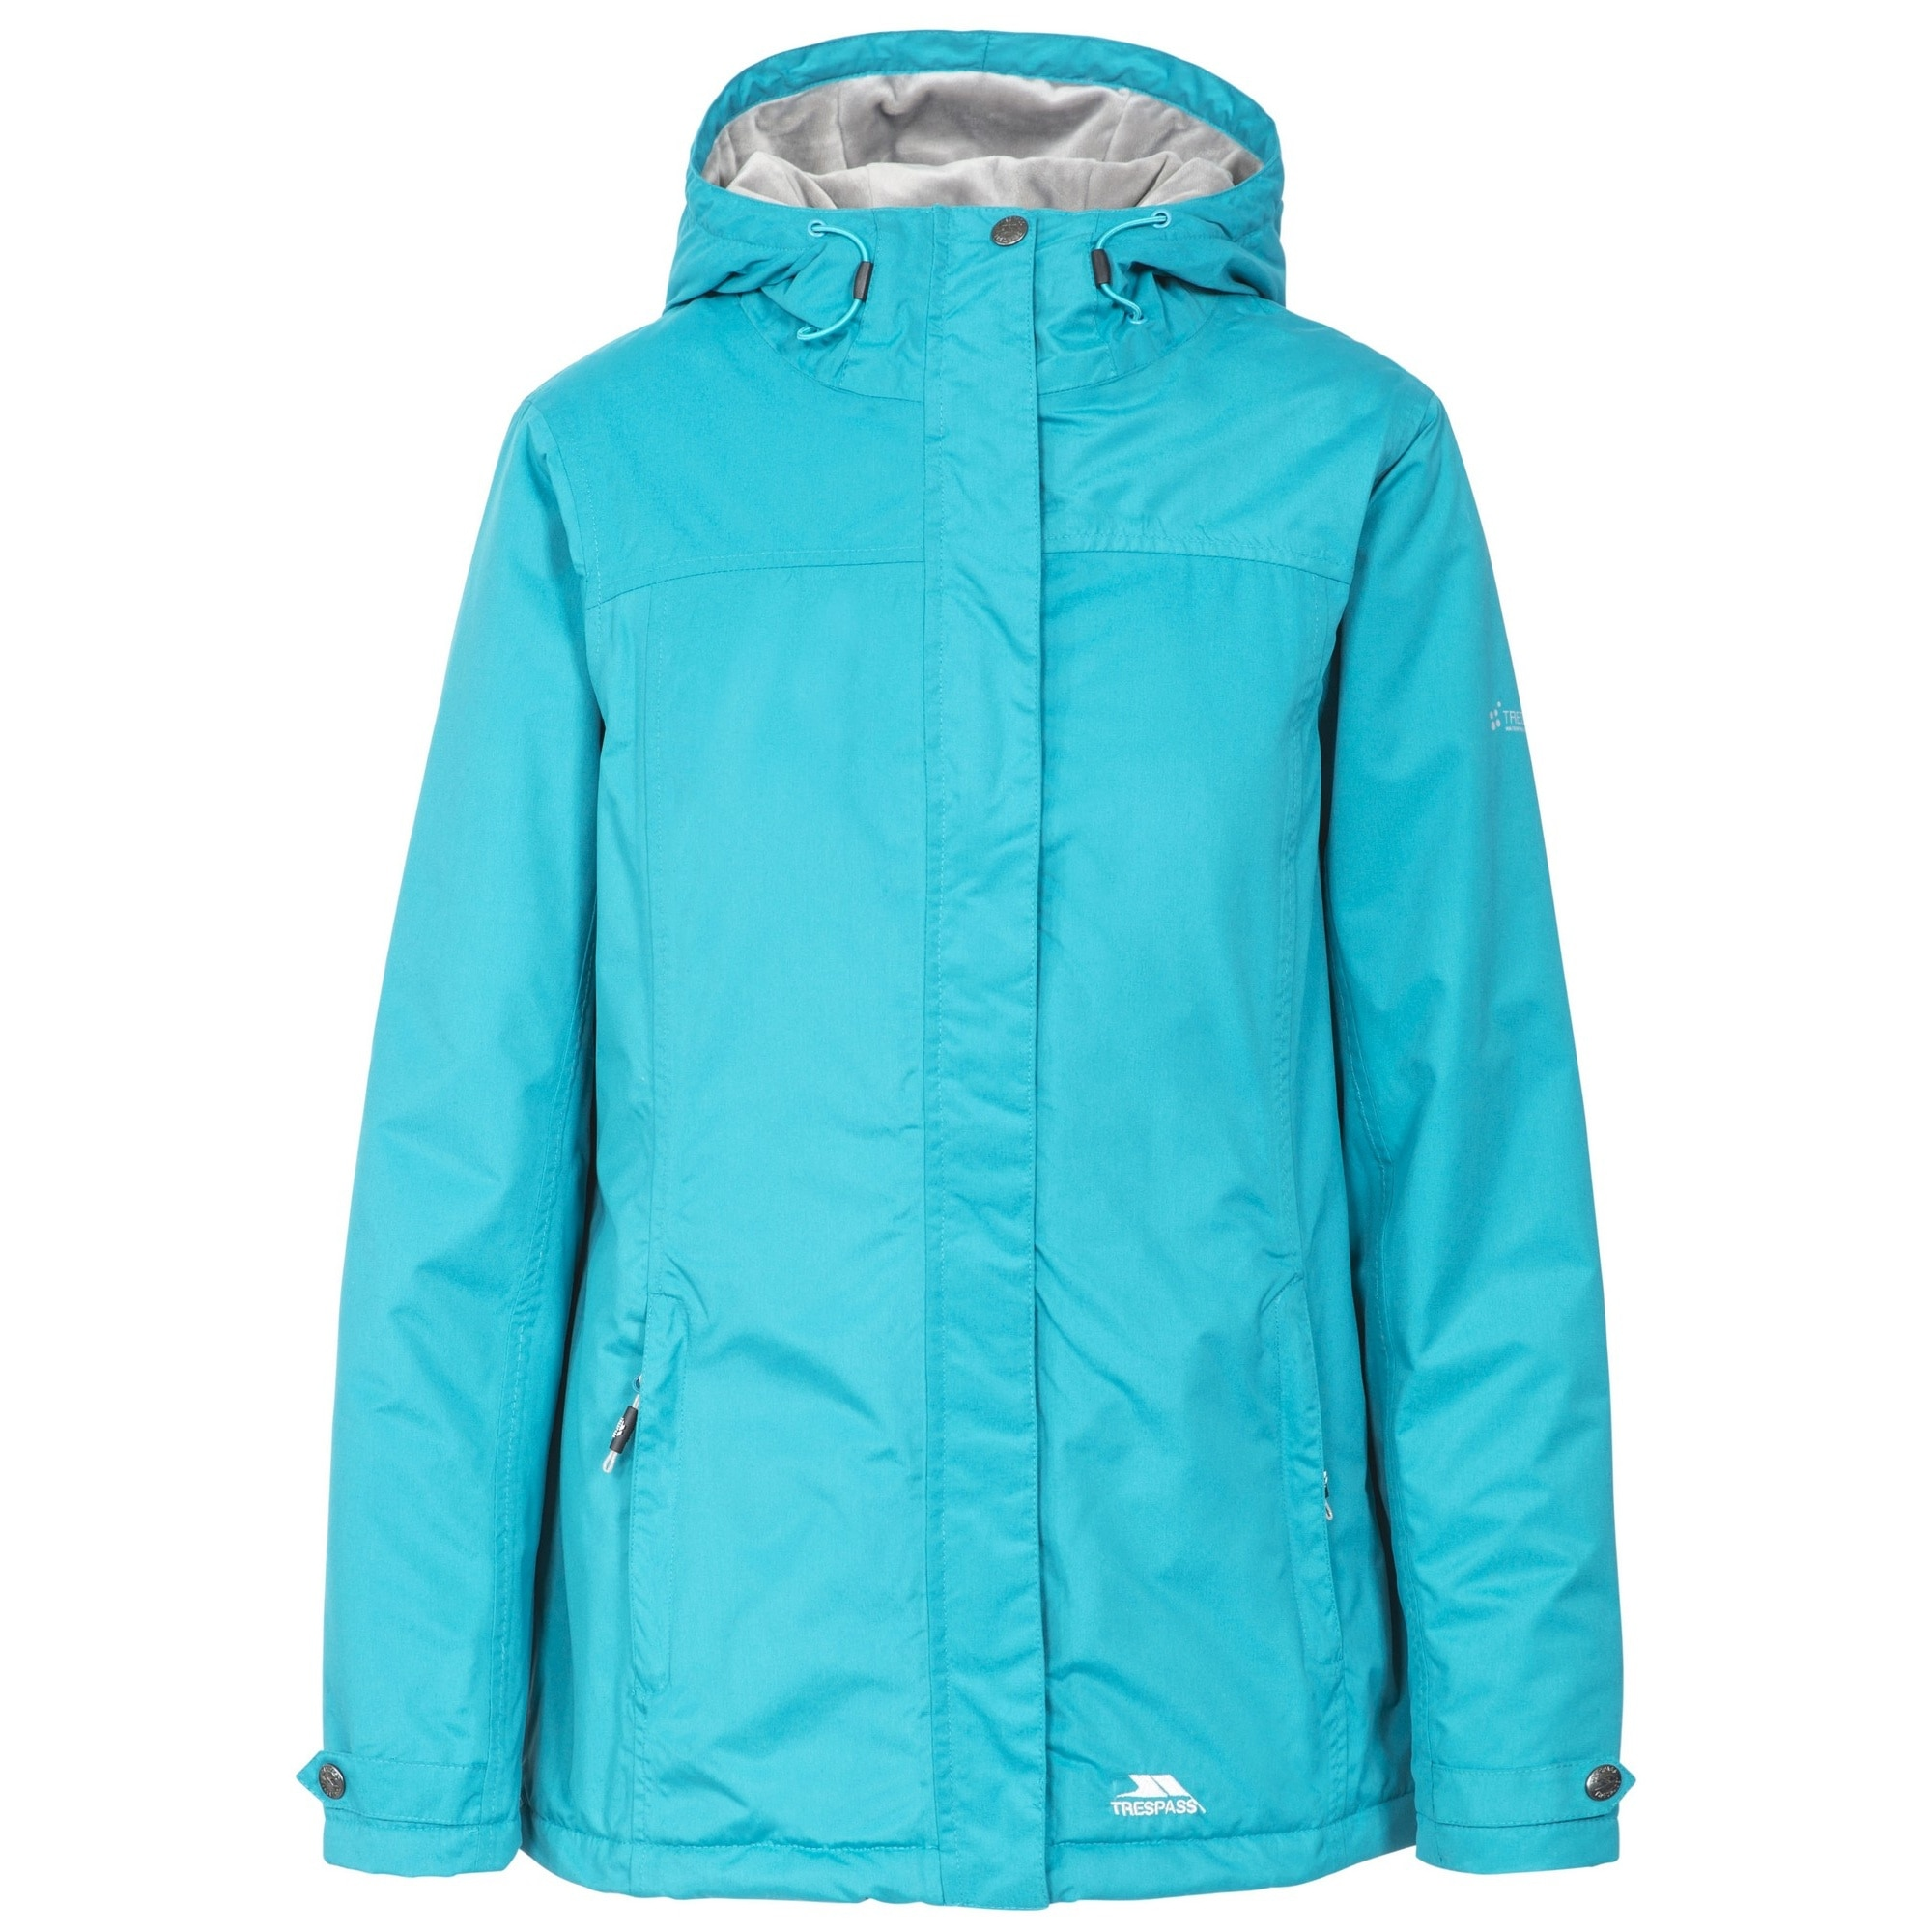 Trespass Steppjacke Damen Outdoorjacke Edna wasserfest wattiert